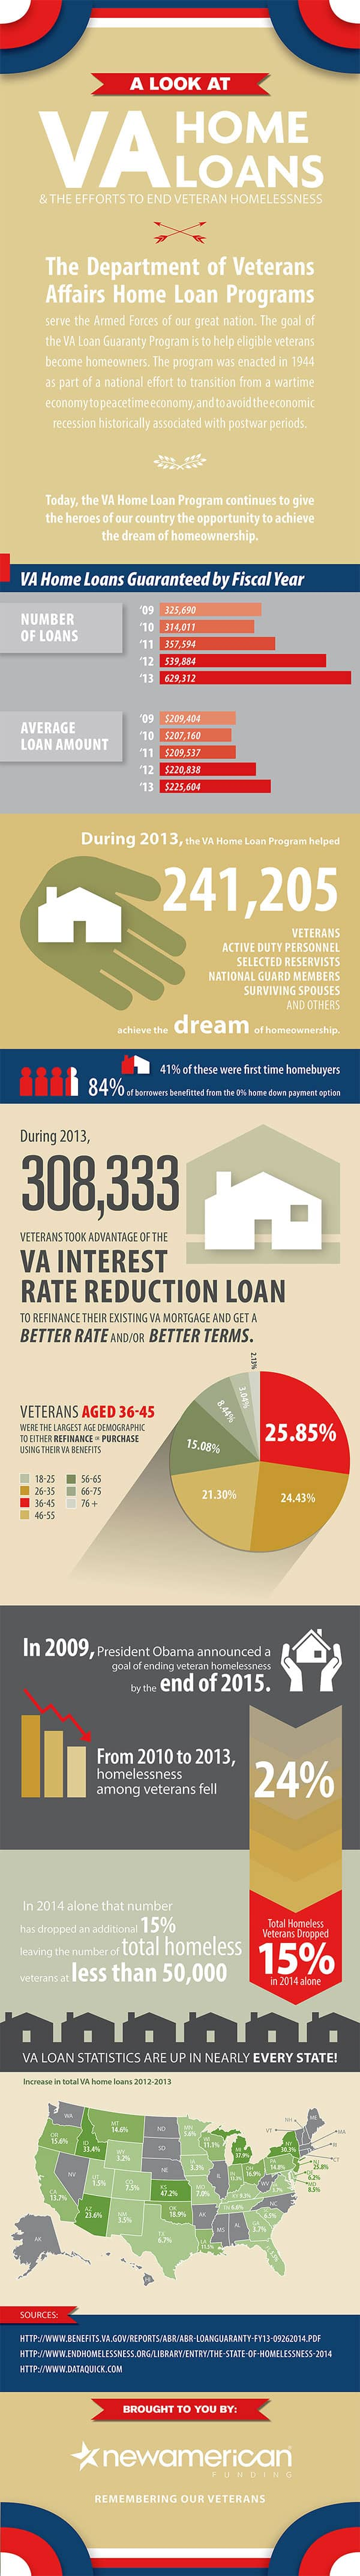 VA Home Loans and the Efforts to End Veteran Homelessness Infographic